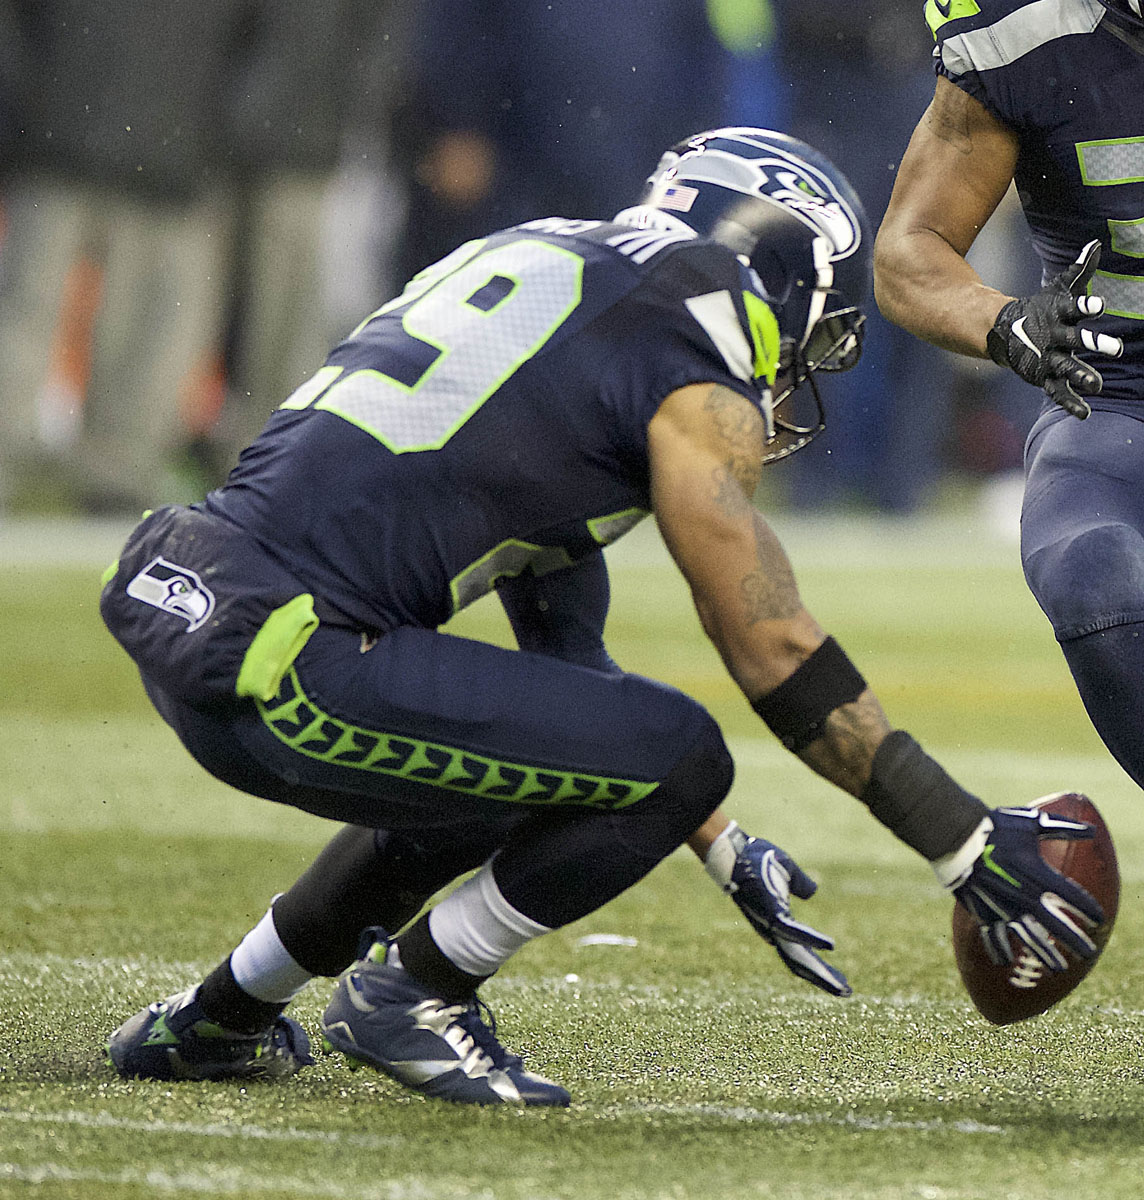 SoleWatch Earl Thomas May Have the Best Air Jordan 7 Cleats Yet